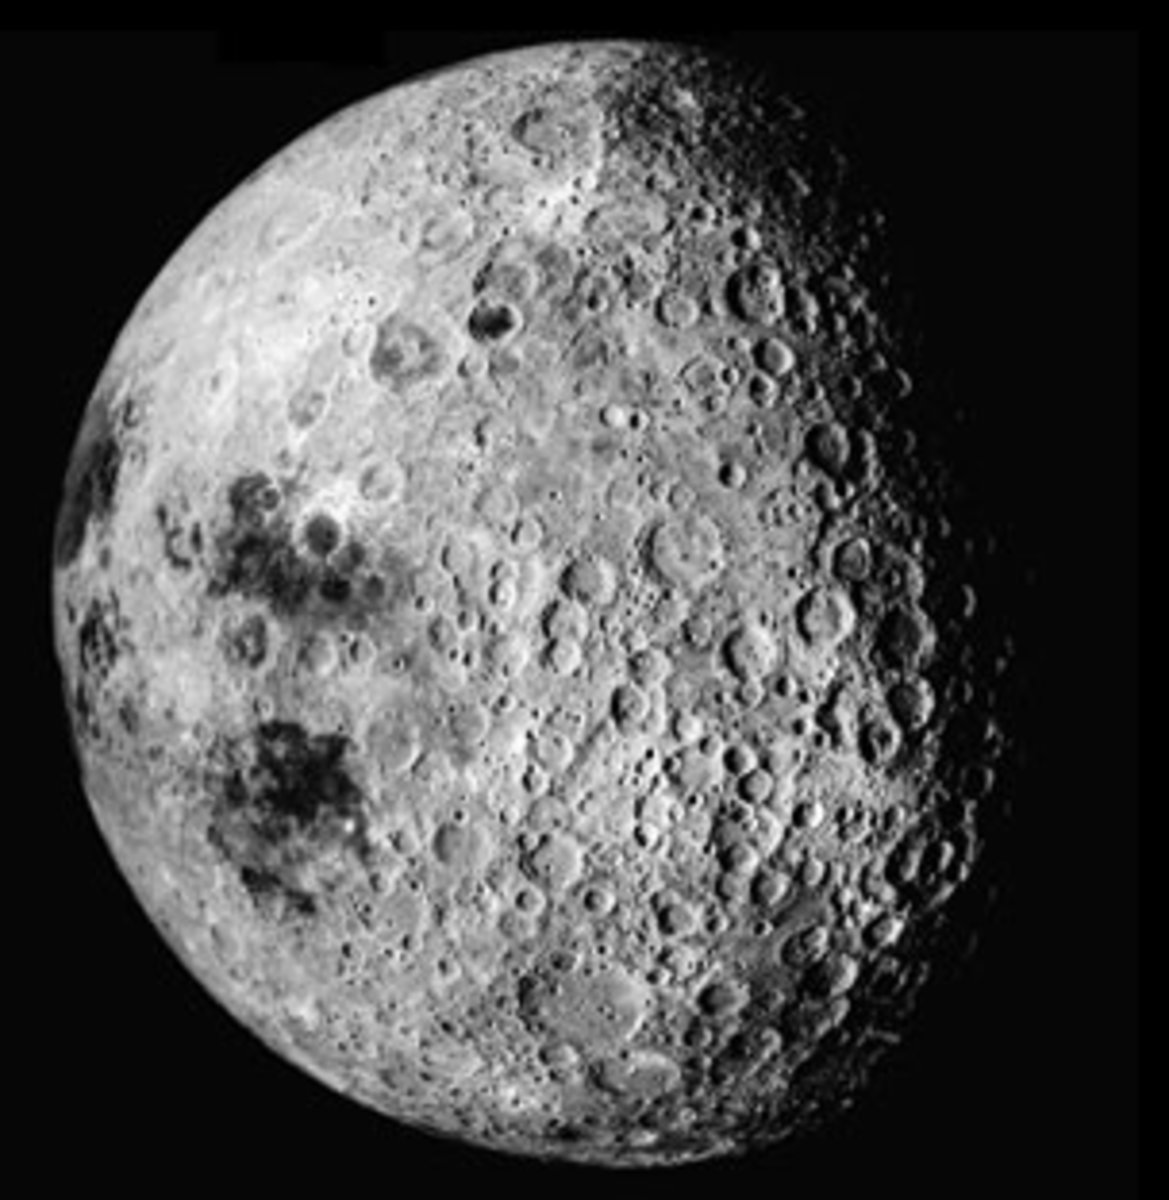 NASA Finally Reveal Video Imaging Of The Dark Side Of The Moon